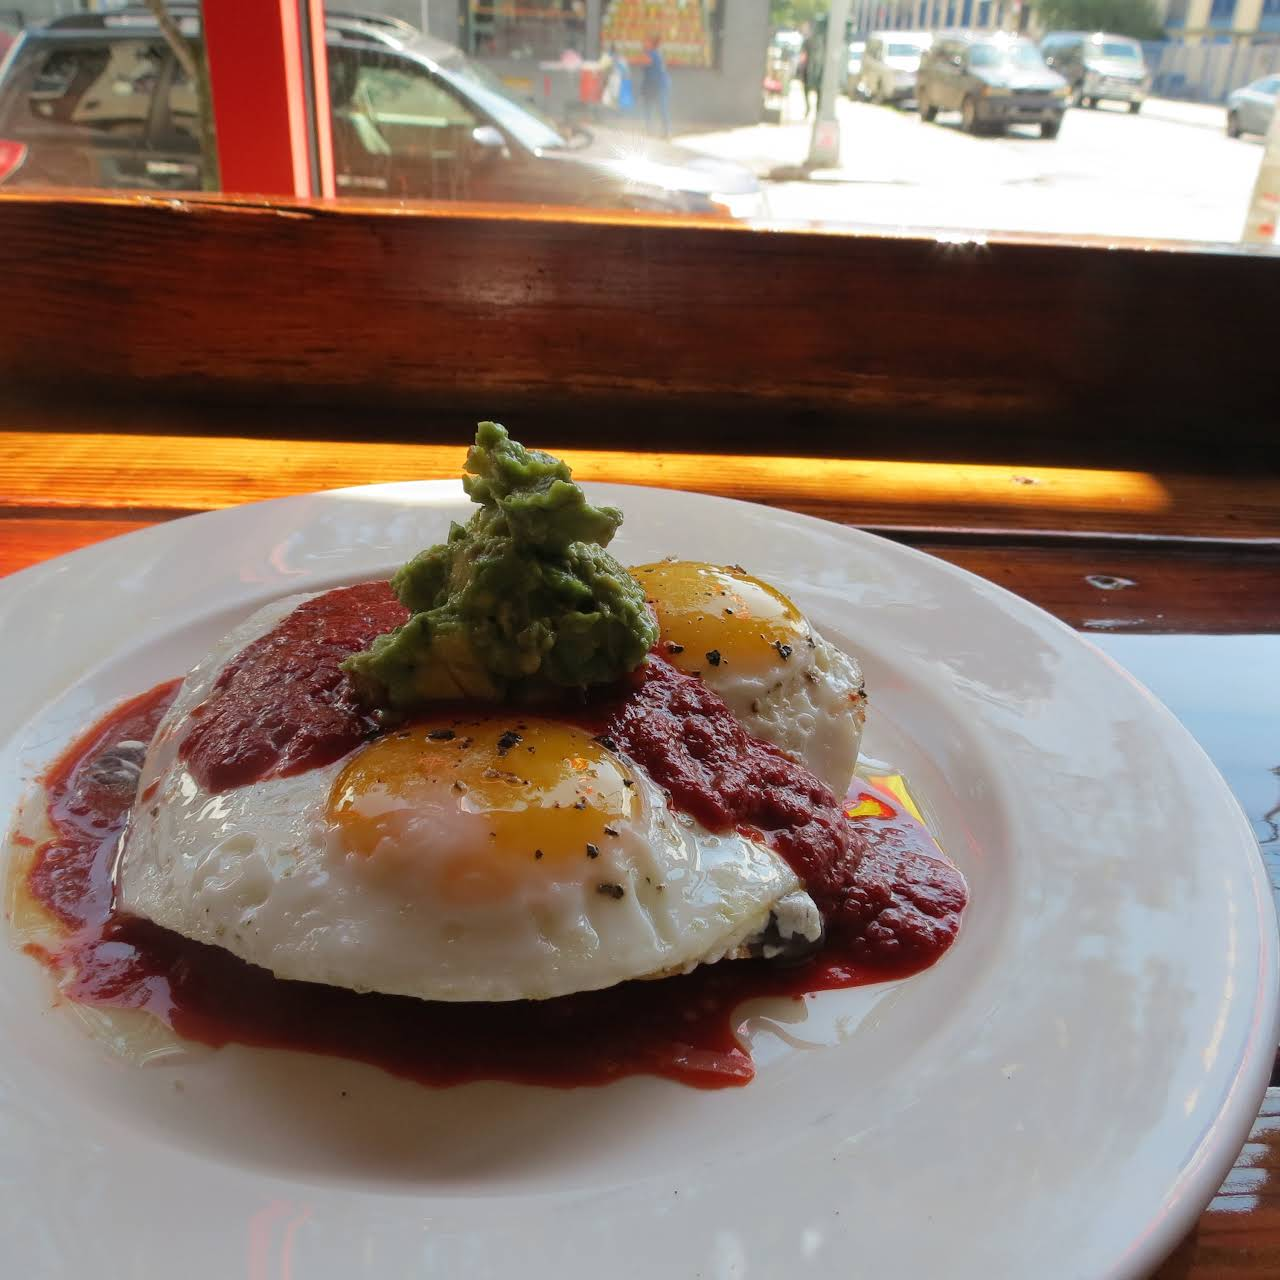 Leslie S Kitchen Restaurant In Brooklyn That Has A Bit Of